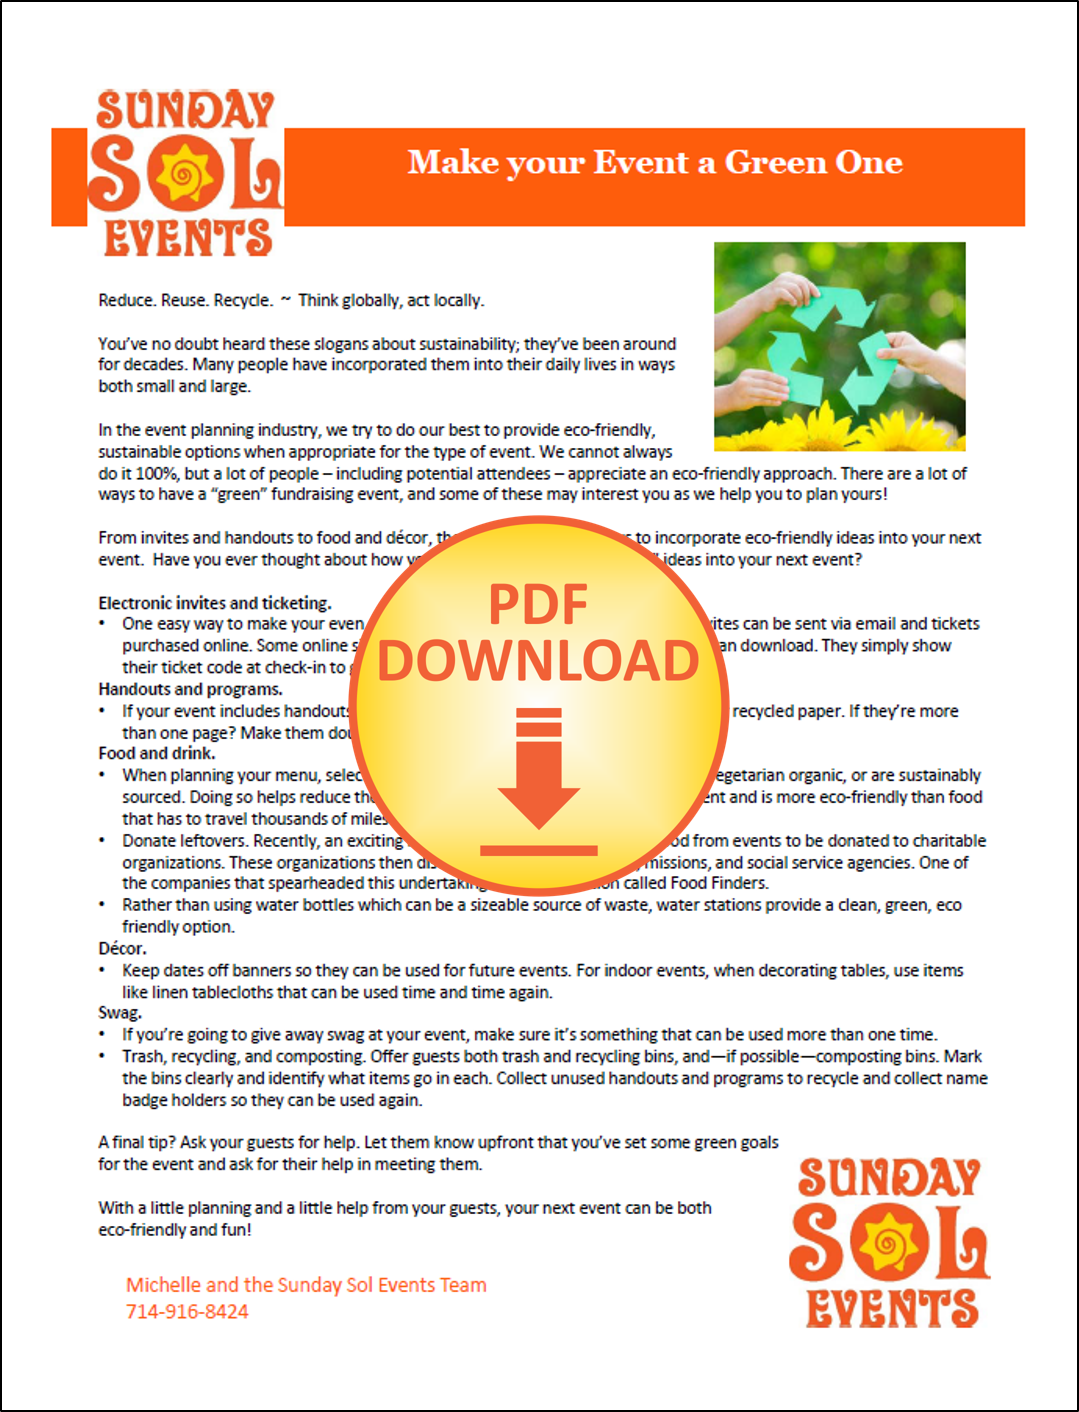 MAKE YOUR EVENT A GREEN ONE form | Sunday Sol Events